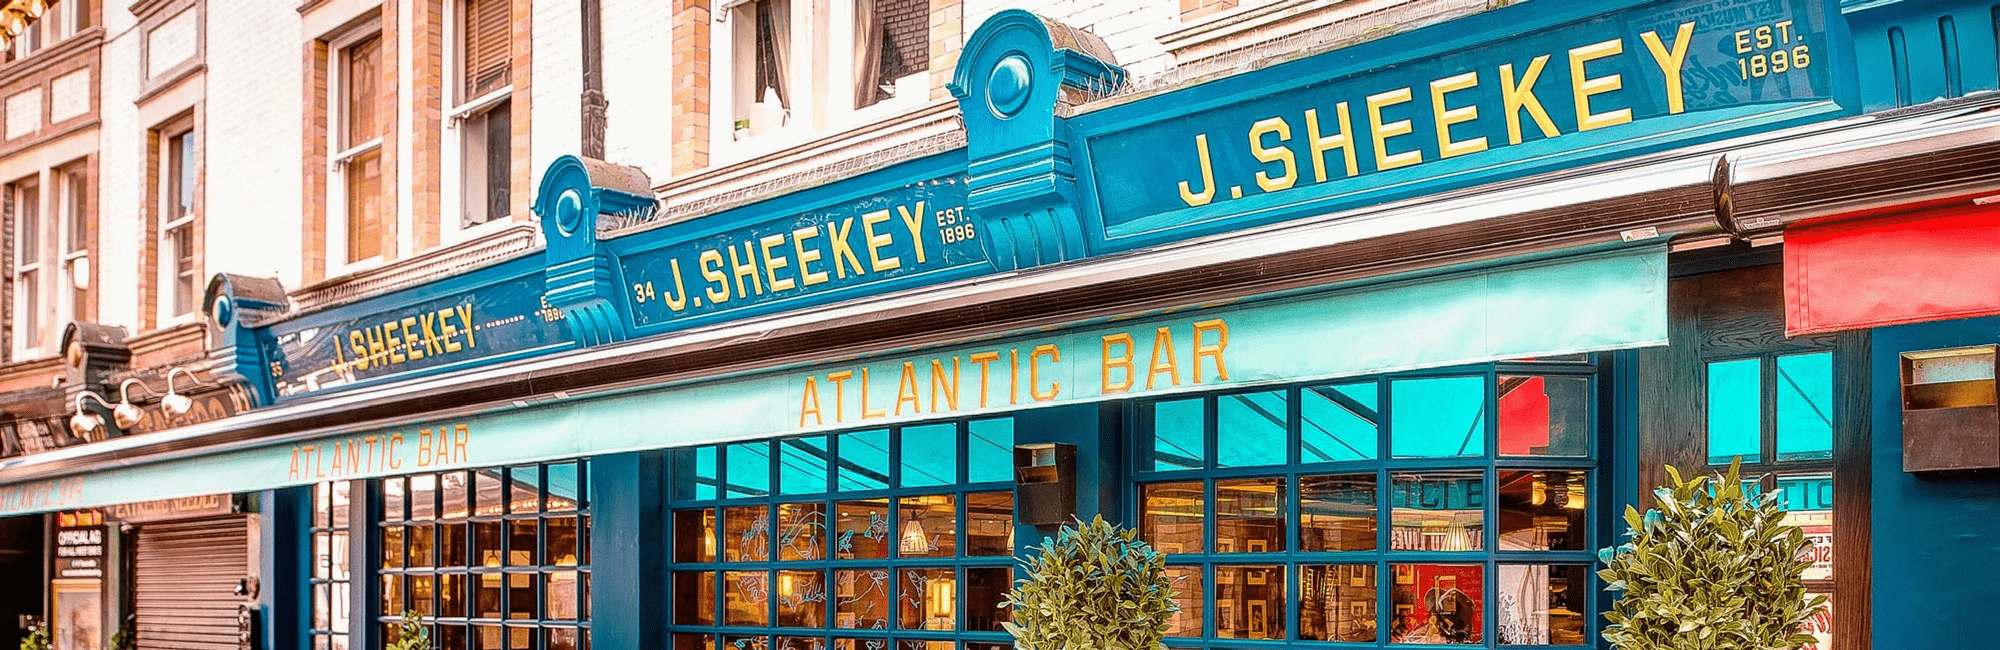 J Sheekey Atlantic Bar, Seafood Restaurant in London's West End